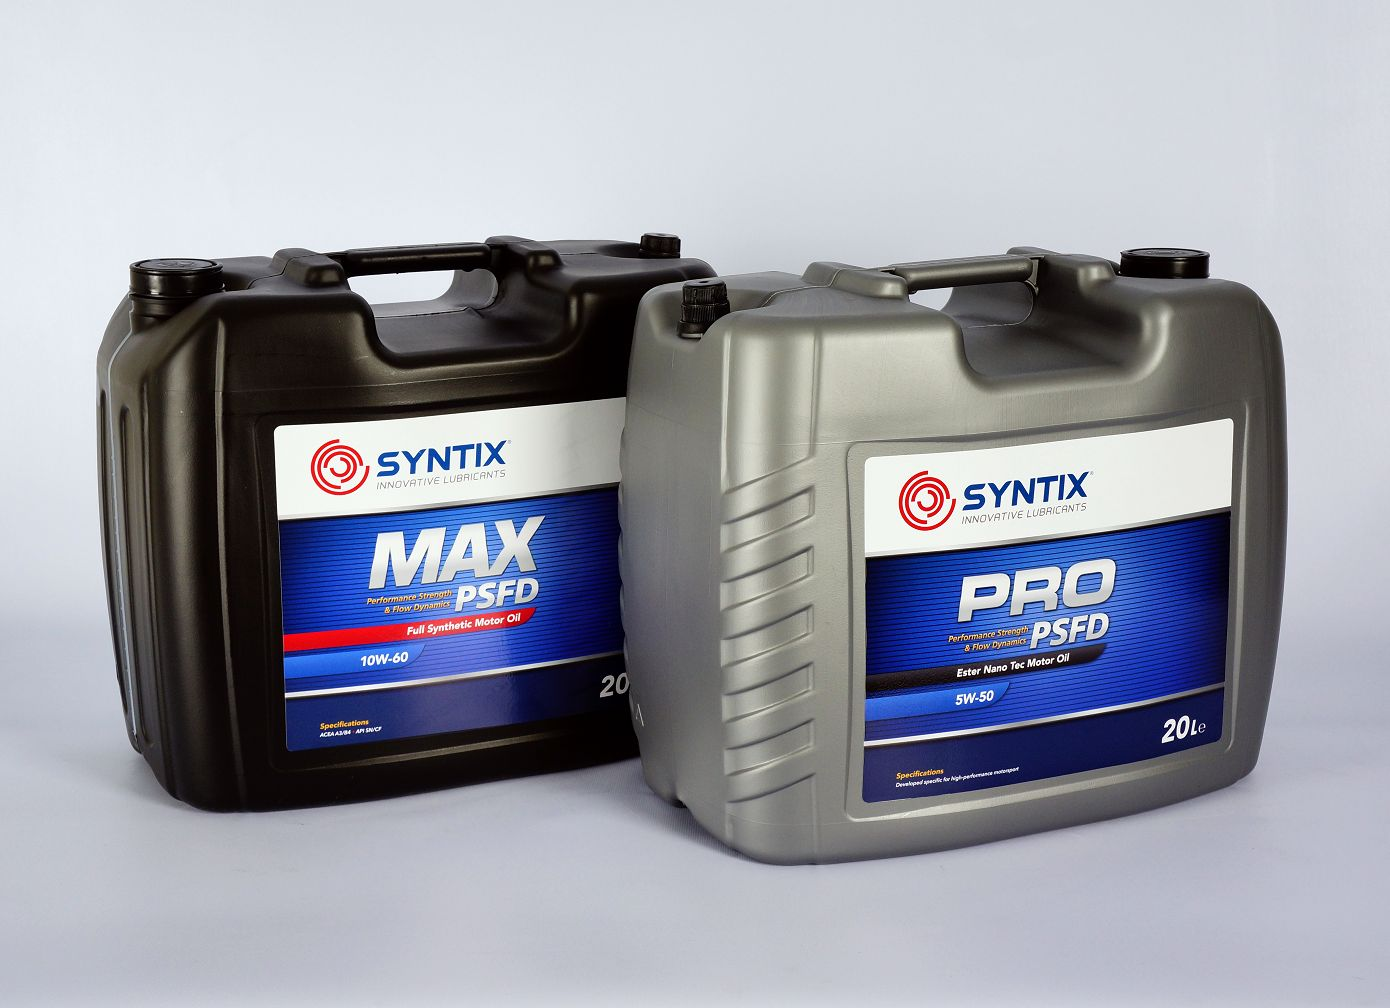 NEW! 20 Liter Can